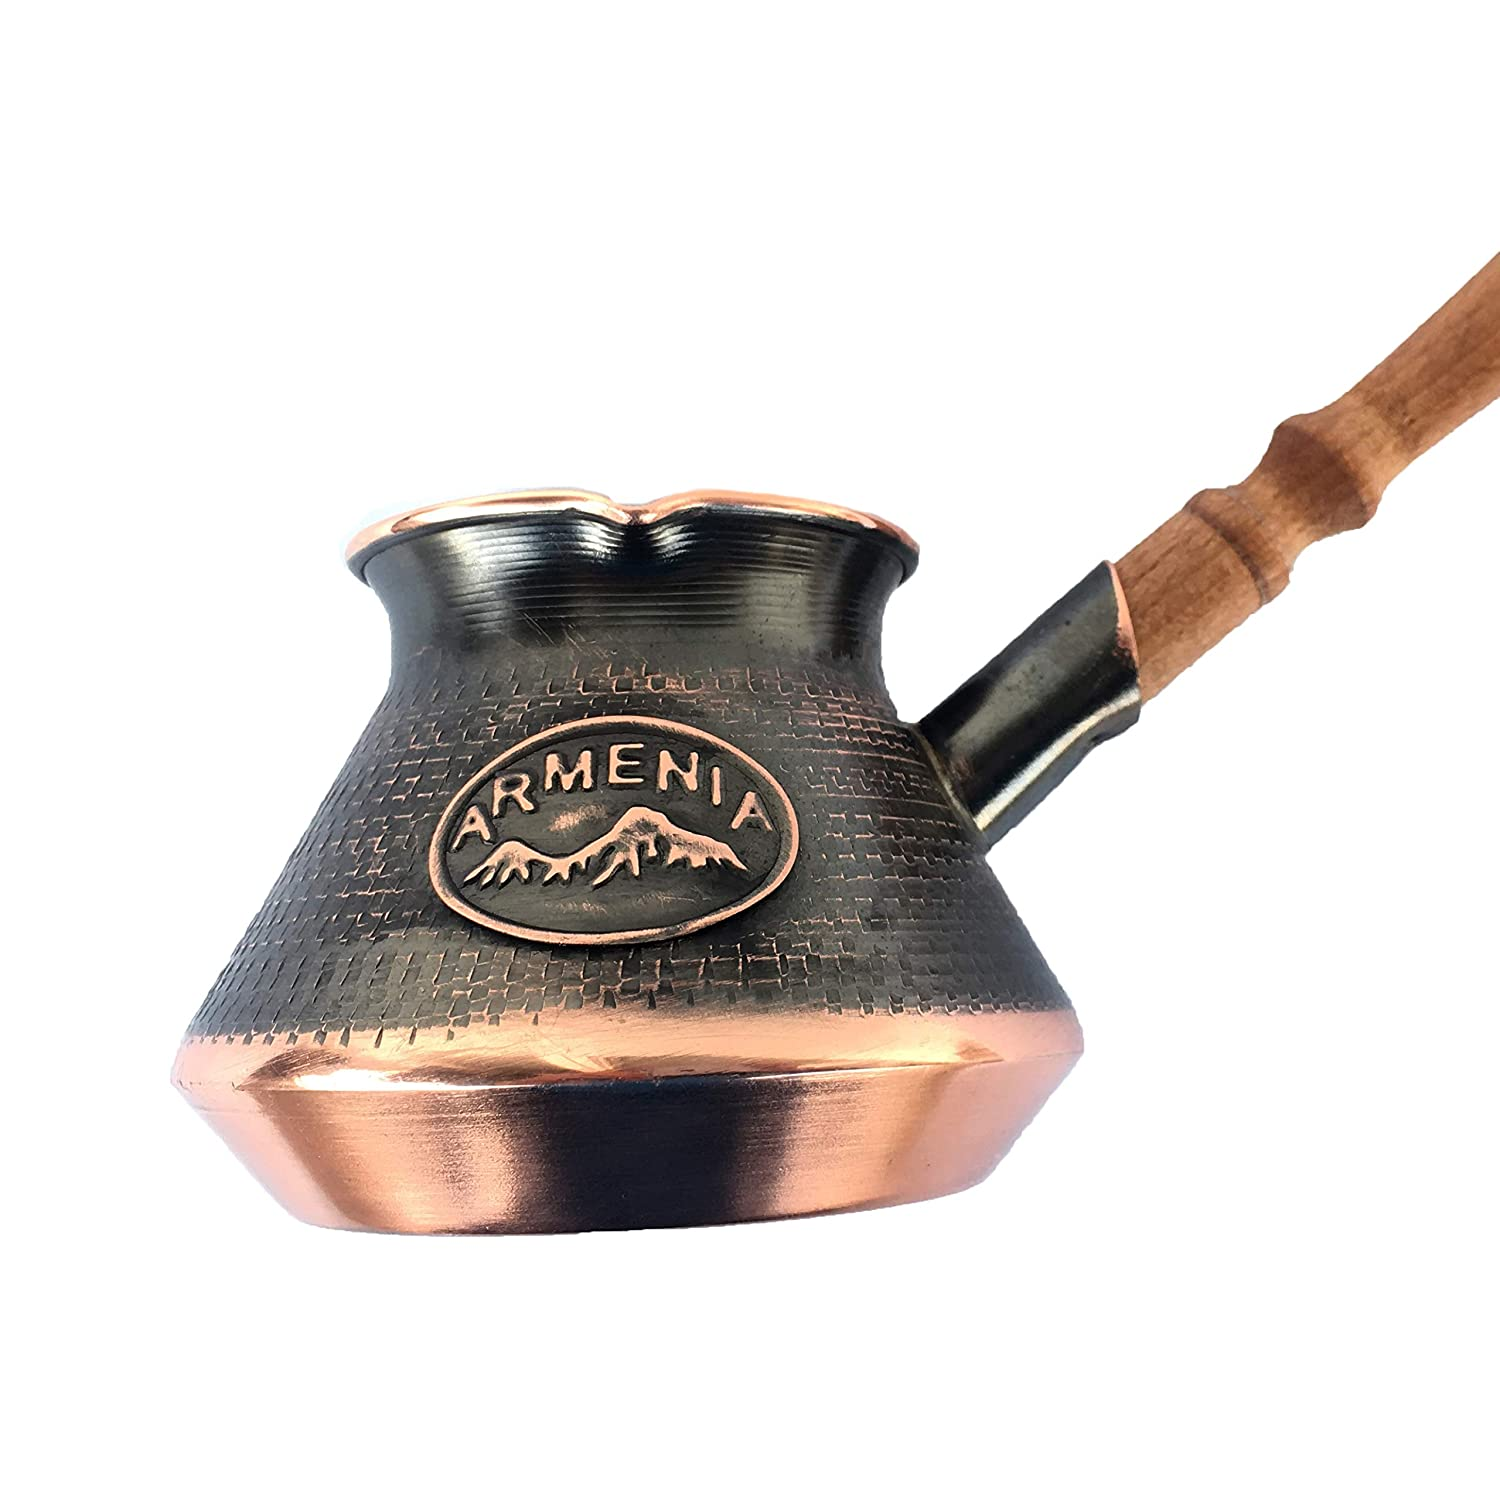 Handmade Armenian Coffee Pot Maker 3 Cup (9 Fl Oz) Copper Jazva Ararat Turkish Arabic Greek Cezve Jezve Ibrik Turka Jazve Wooden Handle (3 Cup (9 US fl.oz)) HandCraftoria